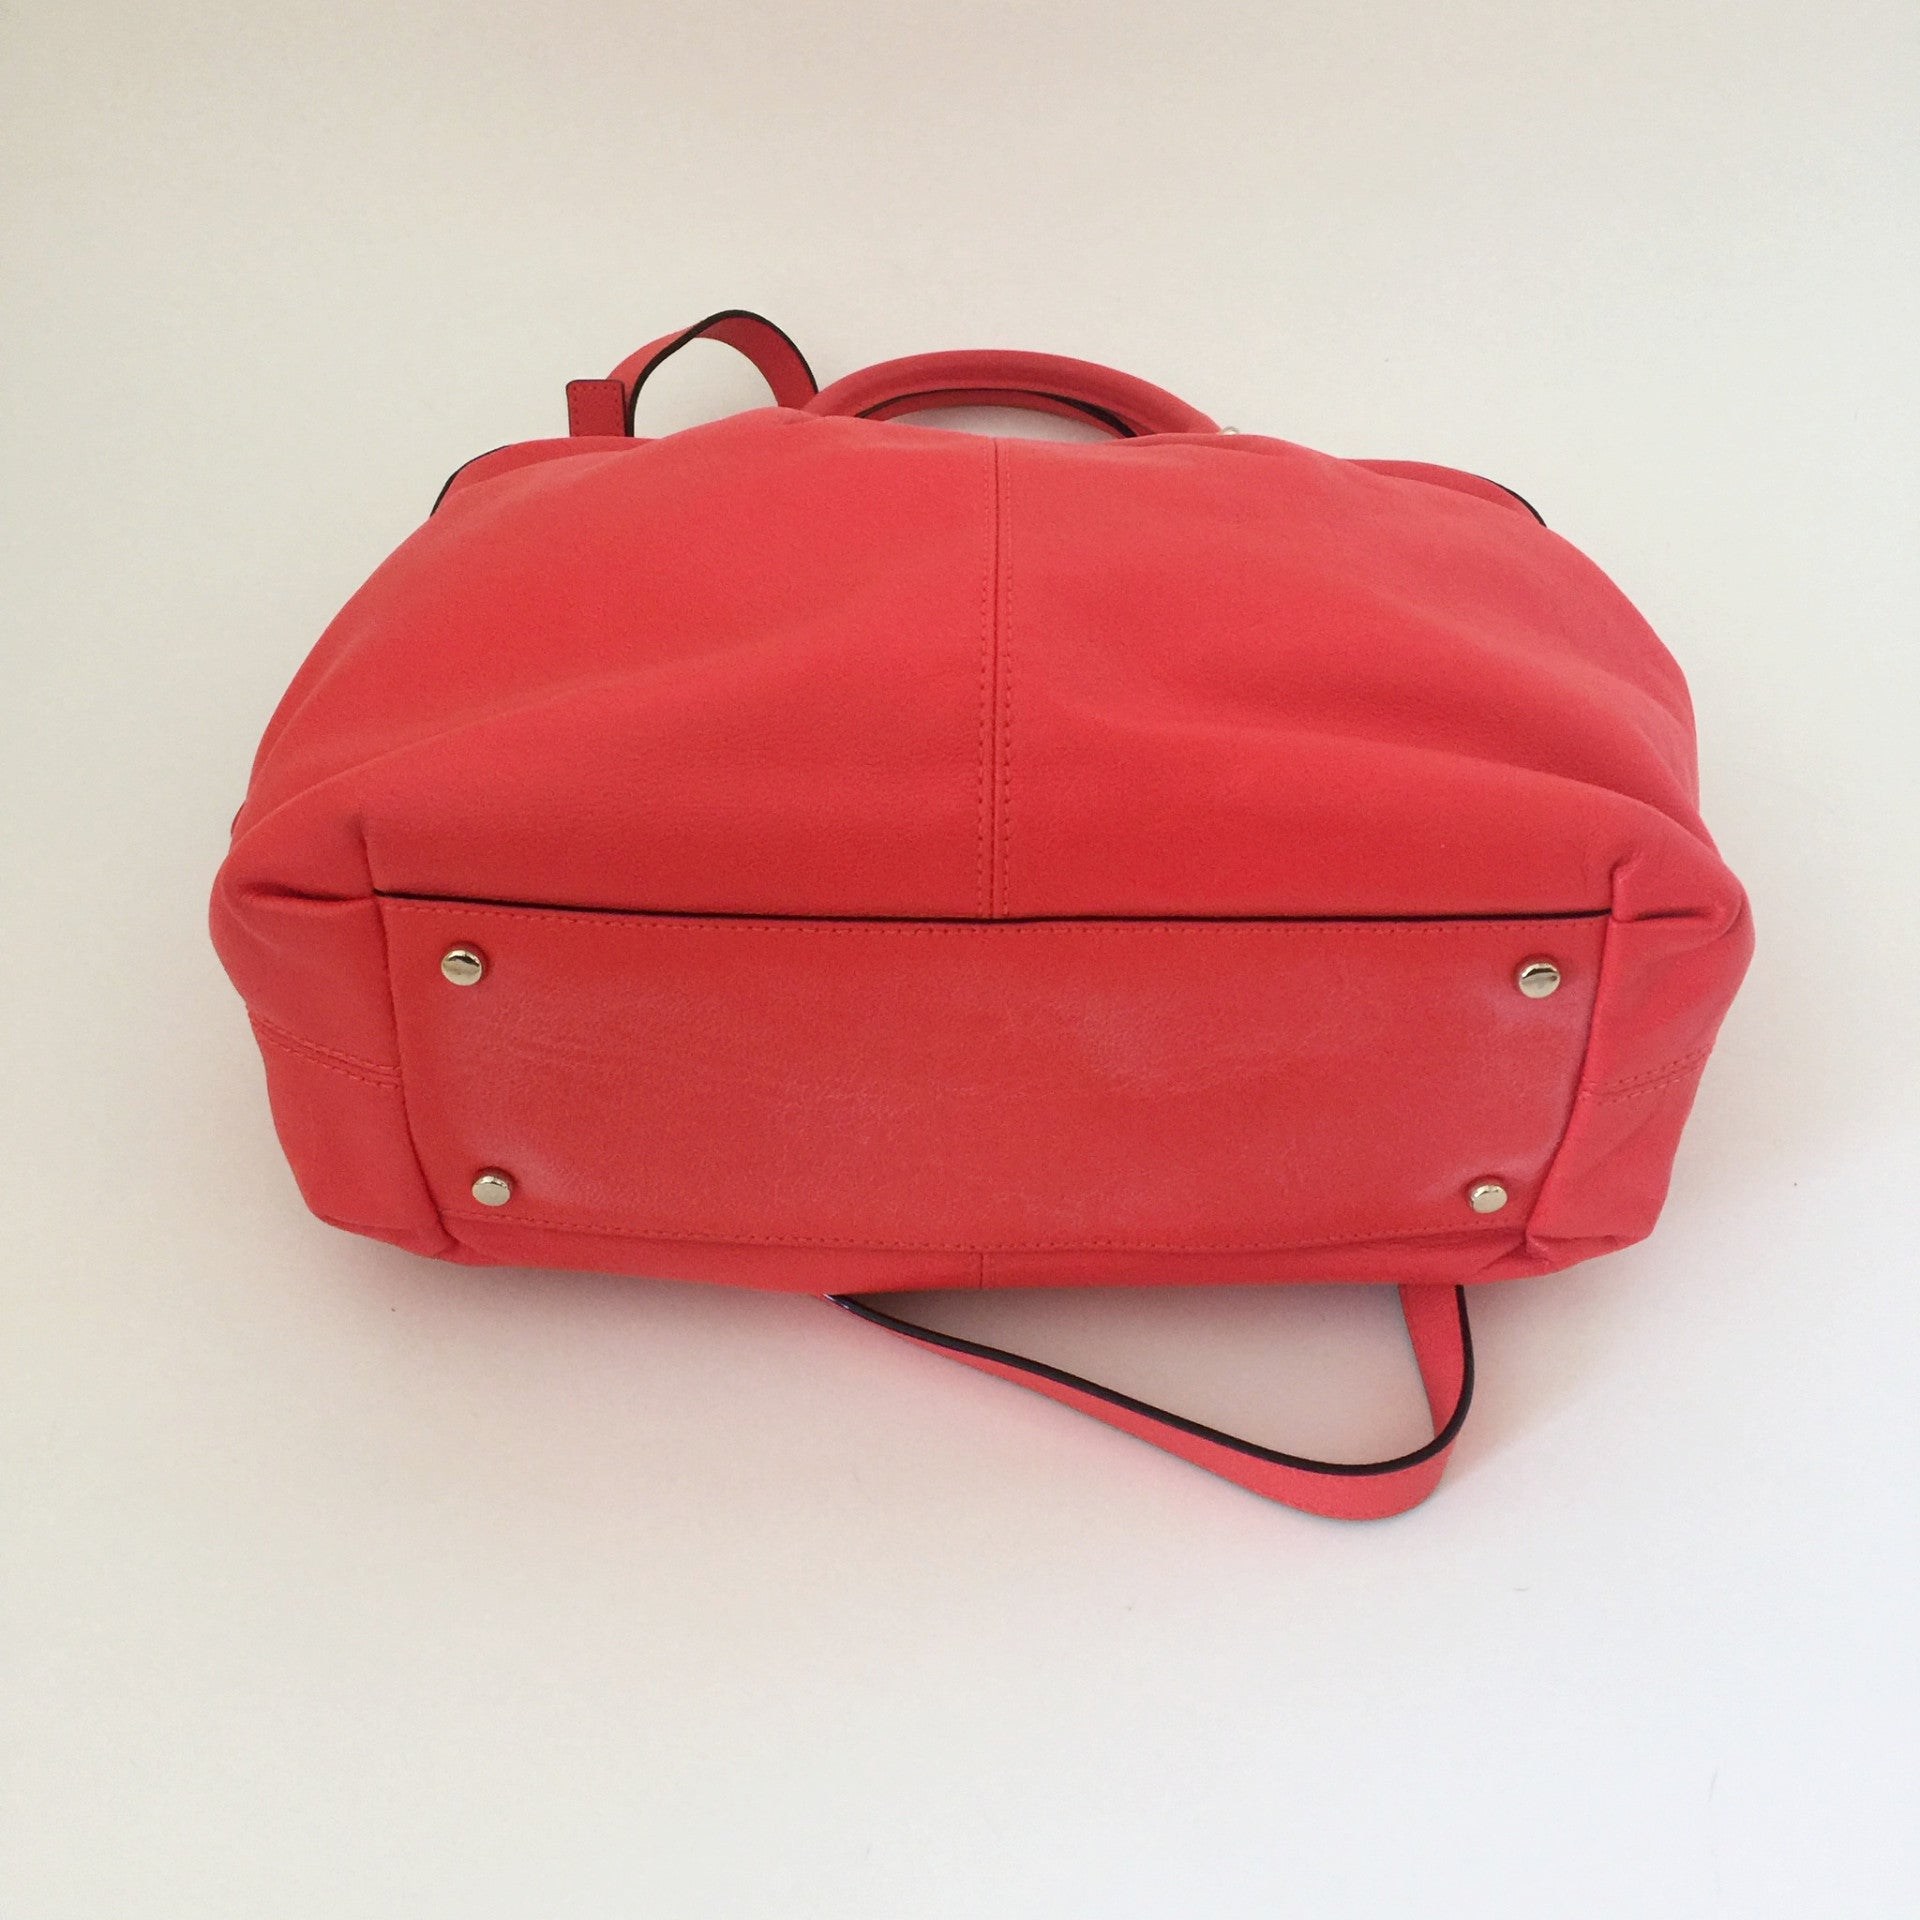 Authentic KATE SPADE Fluorescent Coral Crossbody Handbag